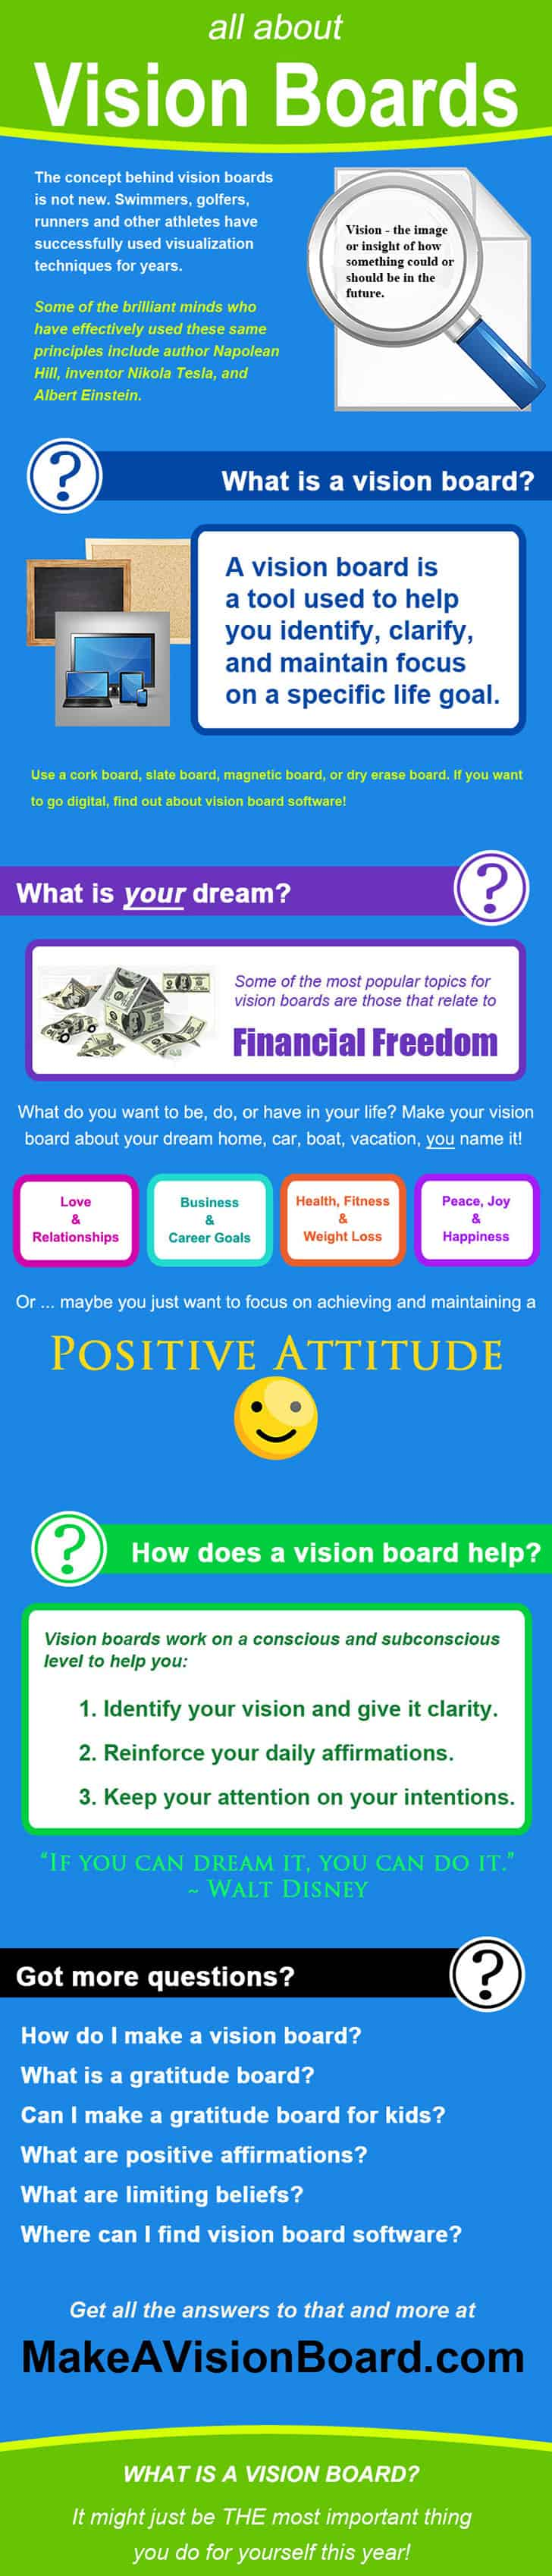 What is a Vision Board? Find Out! All About Vision Boards at https://www.makeavisionboard.com